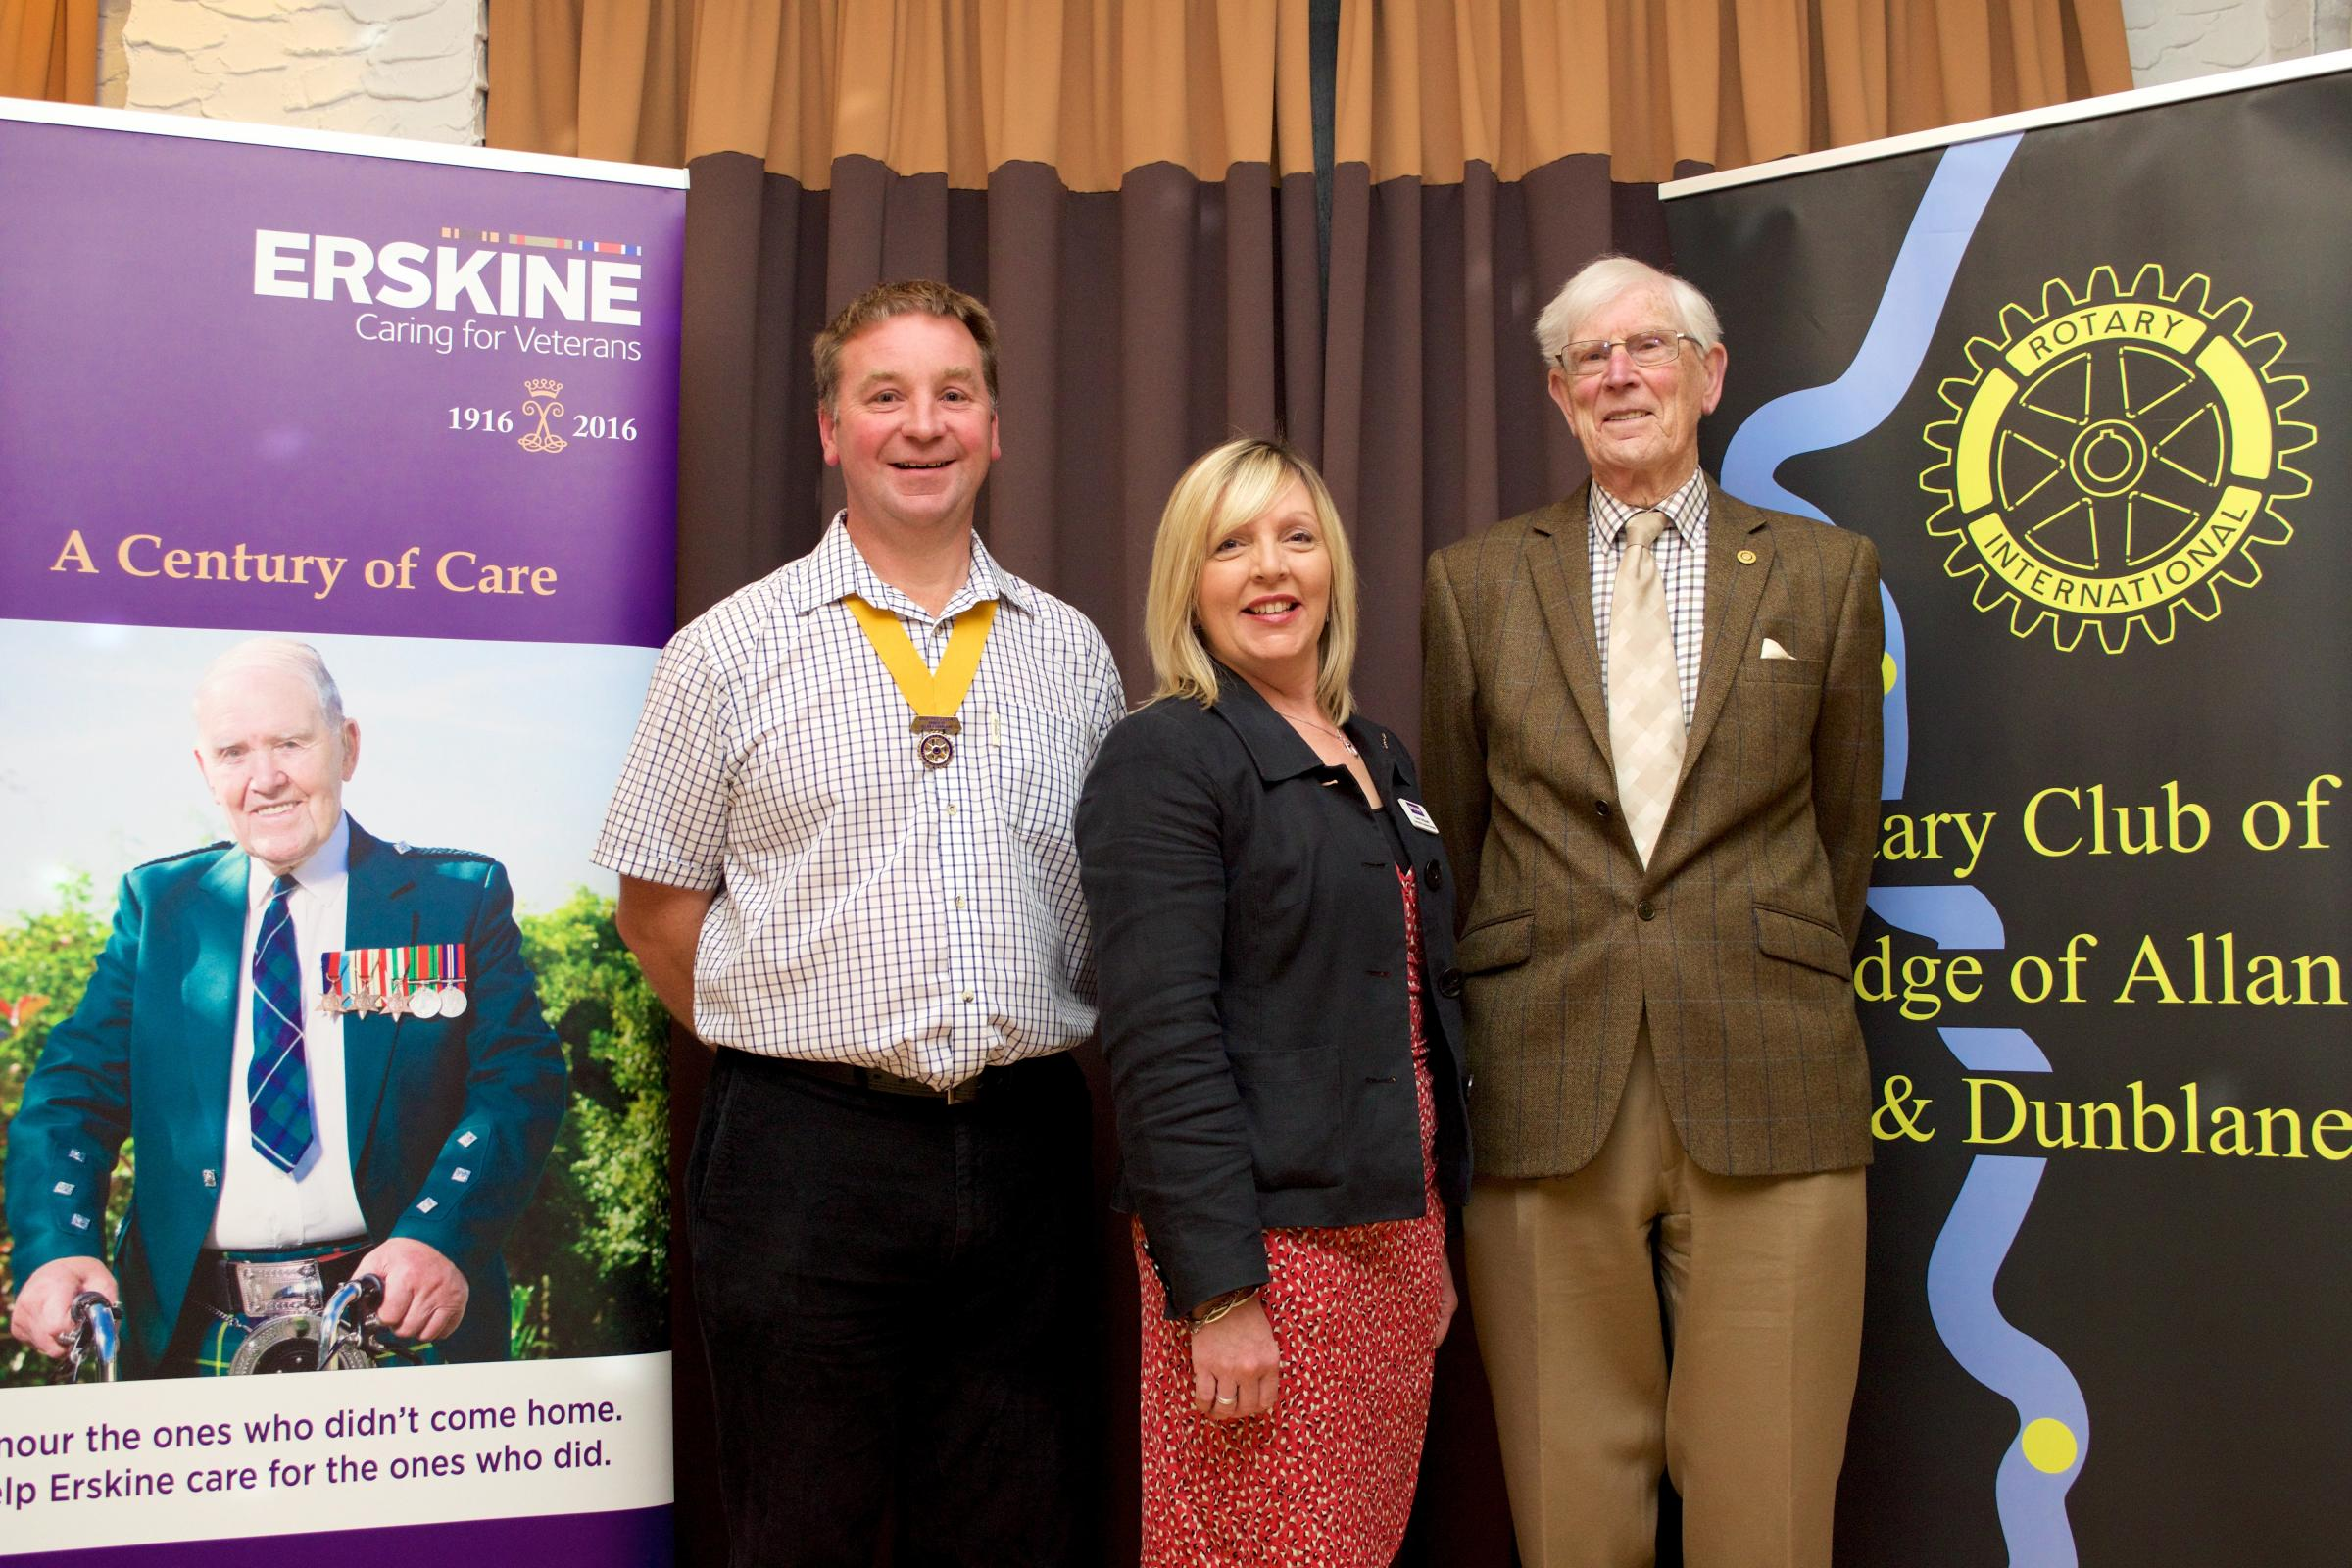 Karen McBeath from Erskine (centre) with president-elect George Morrison (left) and David Mackie